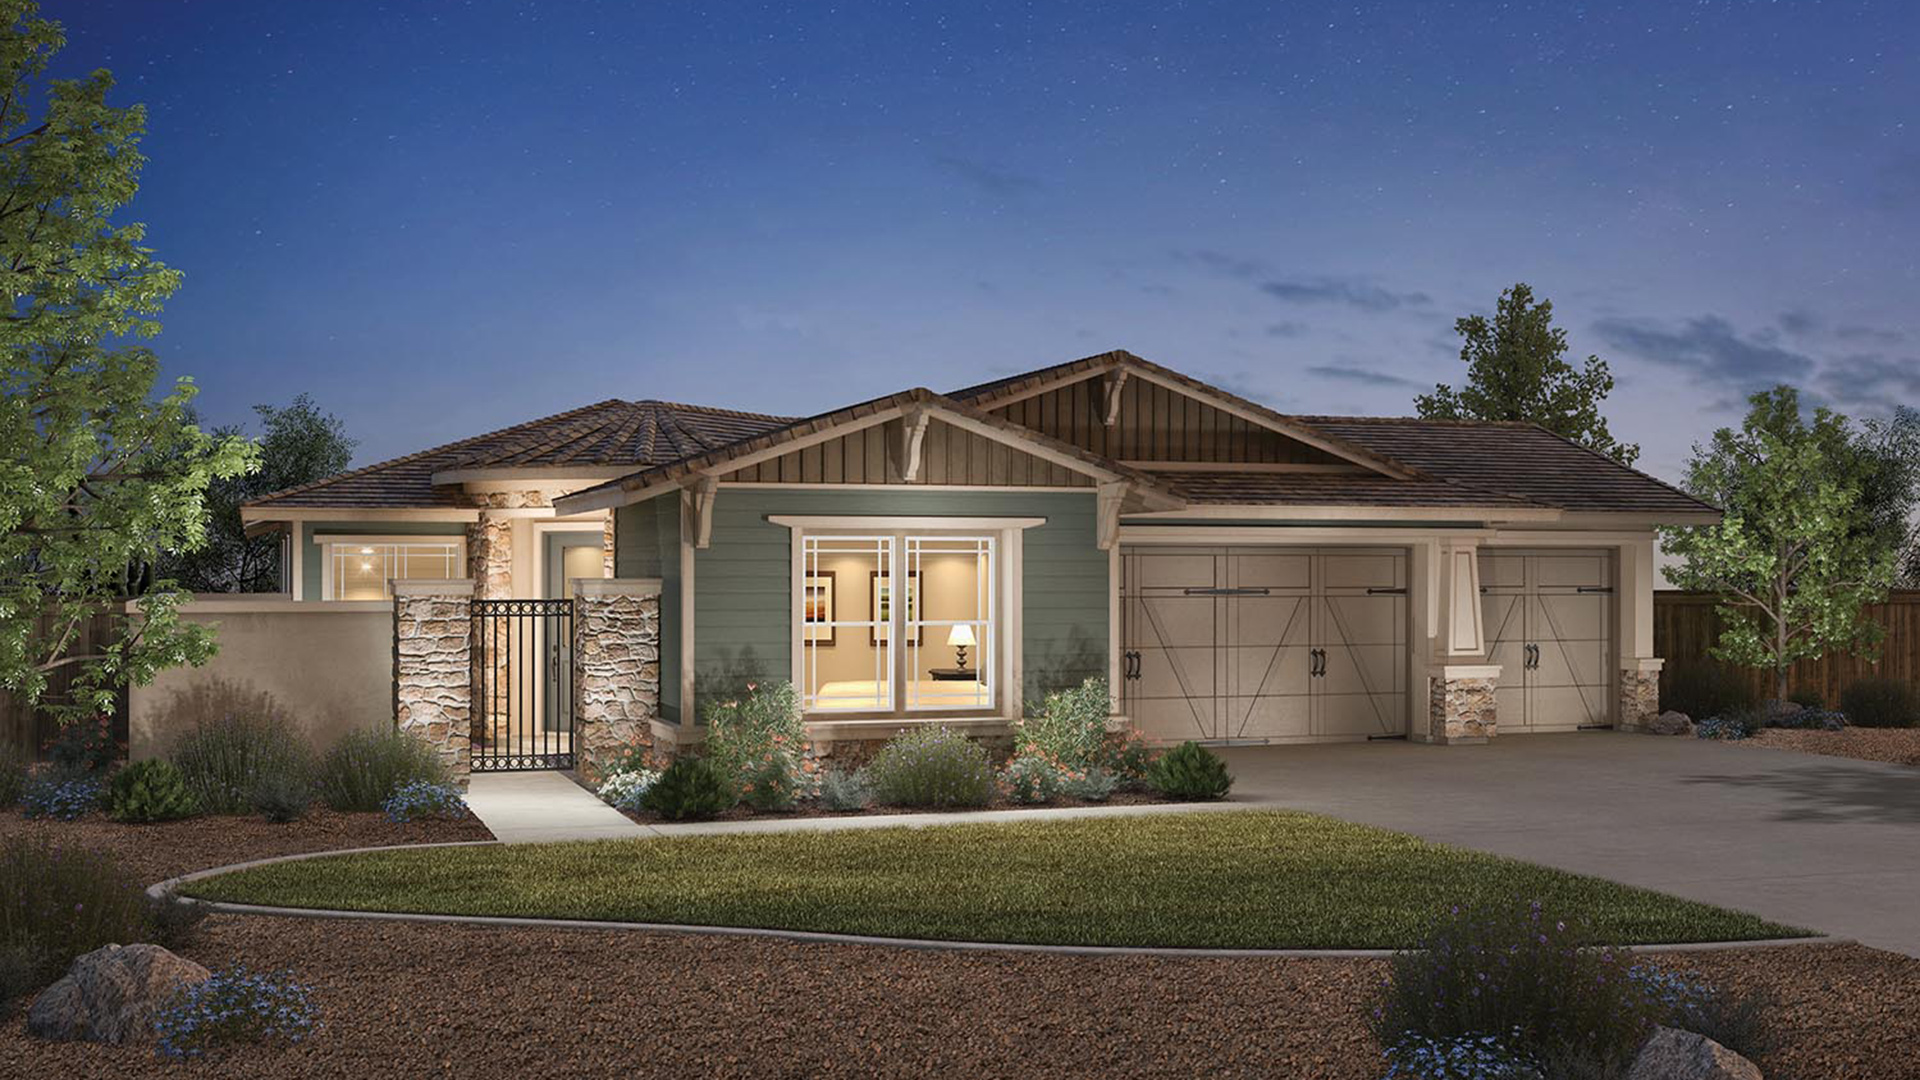 Regency at damonte ranch winterlake collection the for Elite home designs